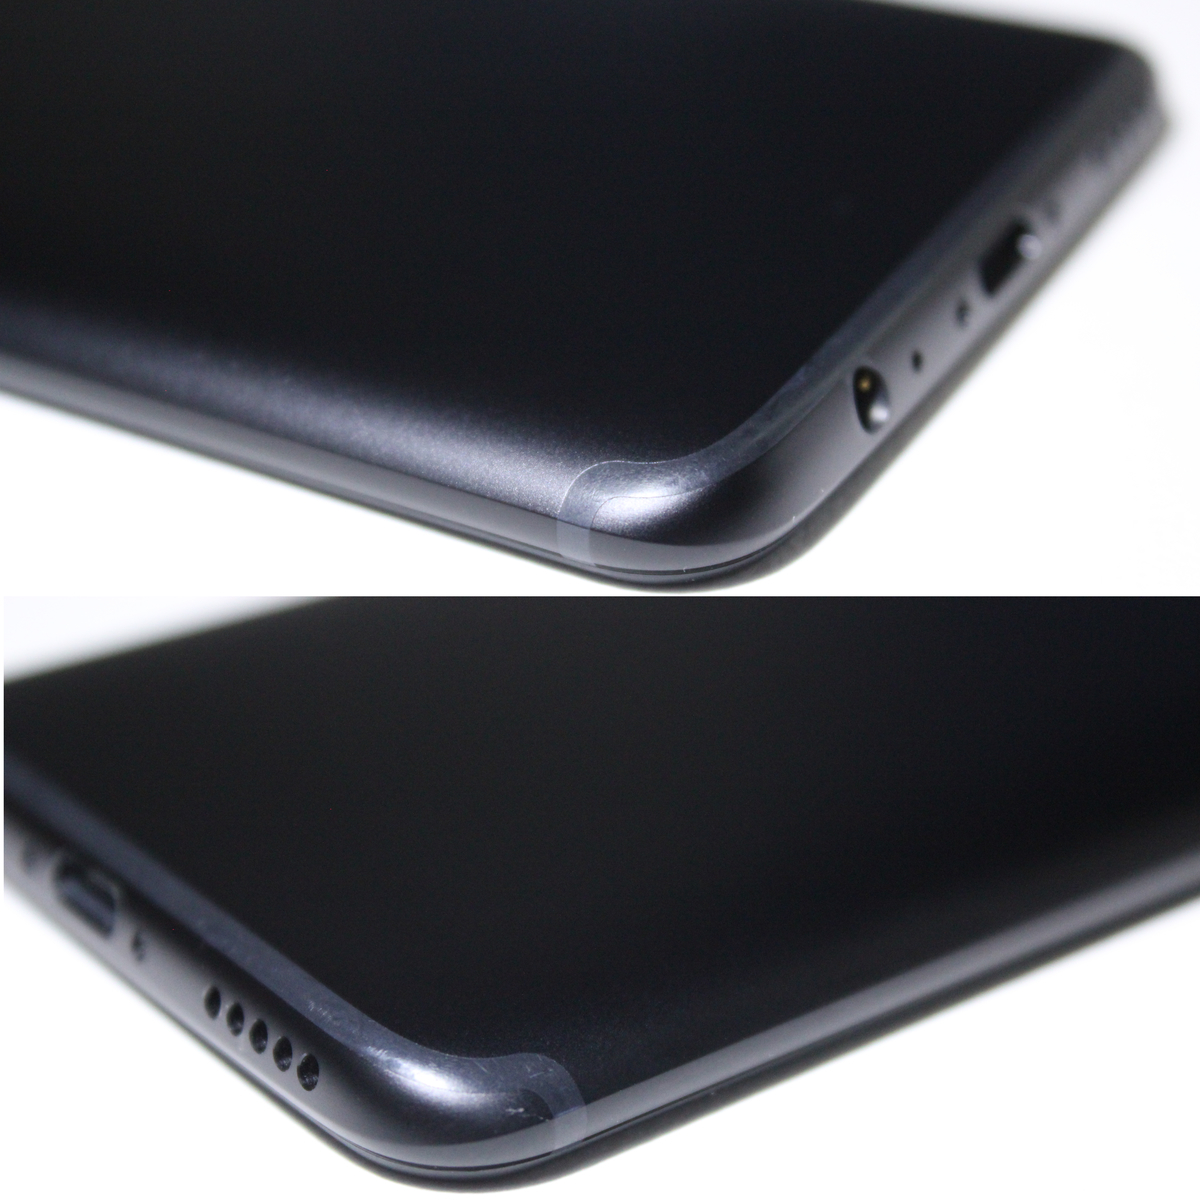 [ 8GB/128GB ] OnePlus 5T A5010 SIMフリー Android 8 アンドロイド Android8 アンドロイド8 /1_画像6